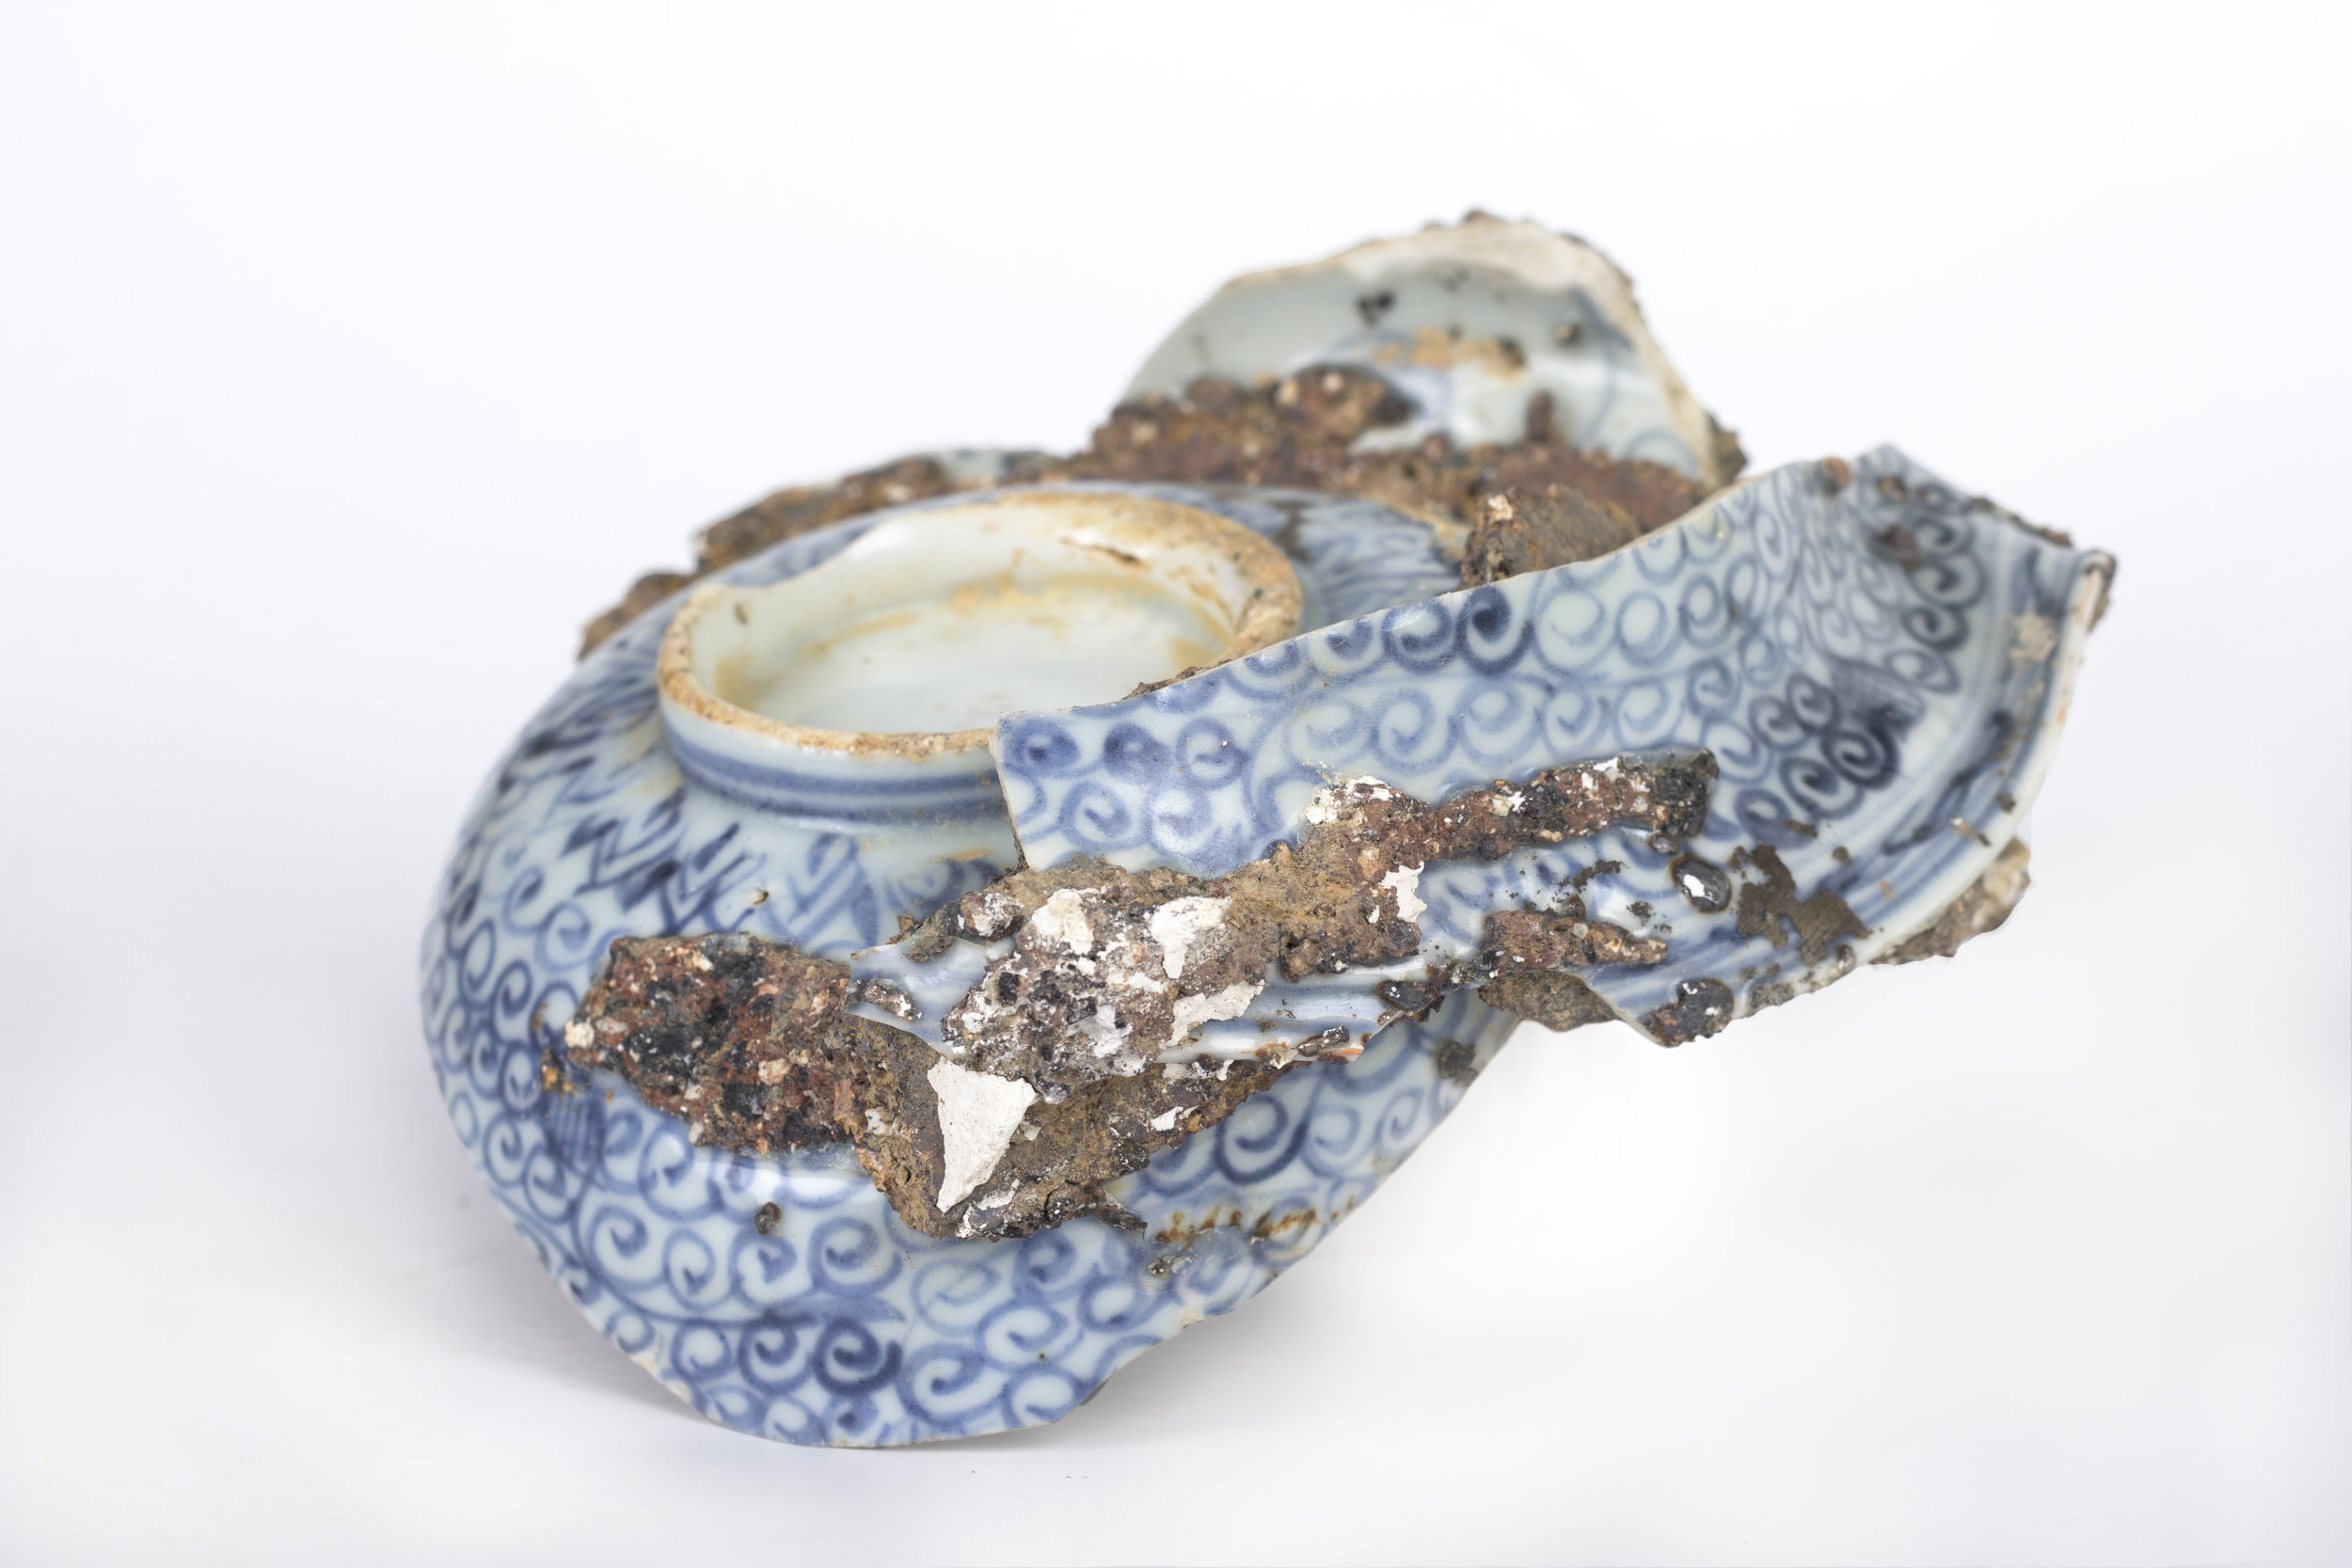 Saggar | Form Series , Found Ming Dynasty Saggar and Porcelain. 2017 - on going  Ming Dynasty collapsed saggar and porcelain forms were collected from various sites around Jingdezhen, China, and moved through the mold making process; cast as thin porcelain versions of their former selves. Shifting form to surface, these objects touch lightly towards ideas related to dislocation, longing, and the inescapable potential of the cast off. Collapsing time and place, their glazed interiors seek to reanimate the objects as functional vessels of the present.